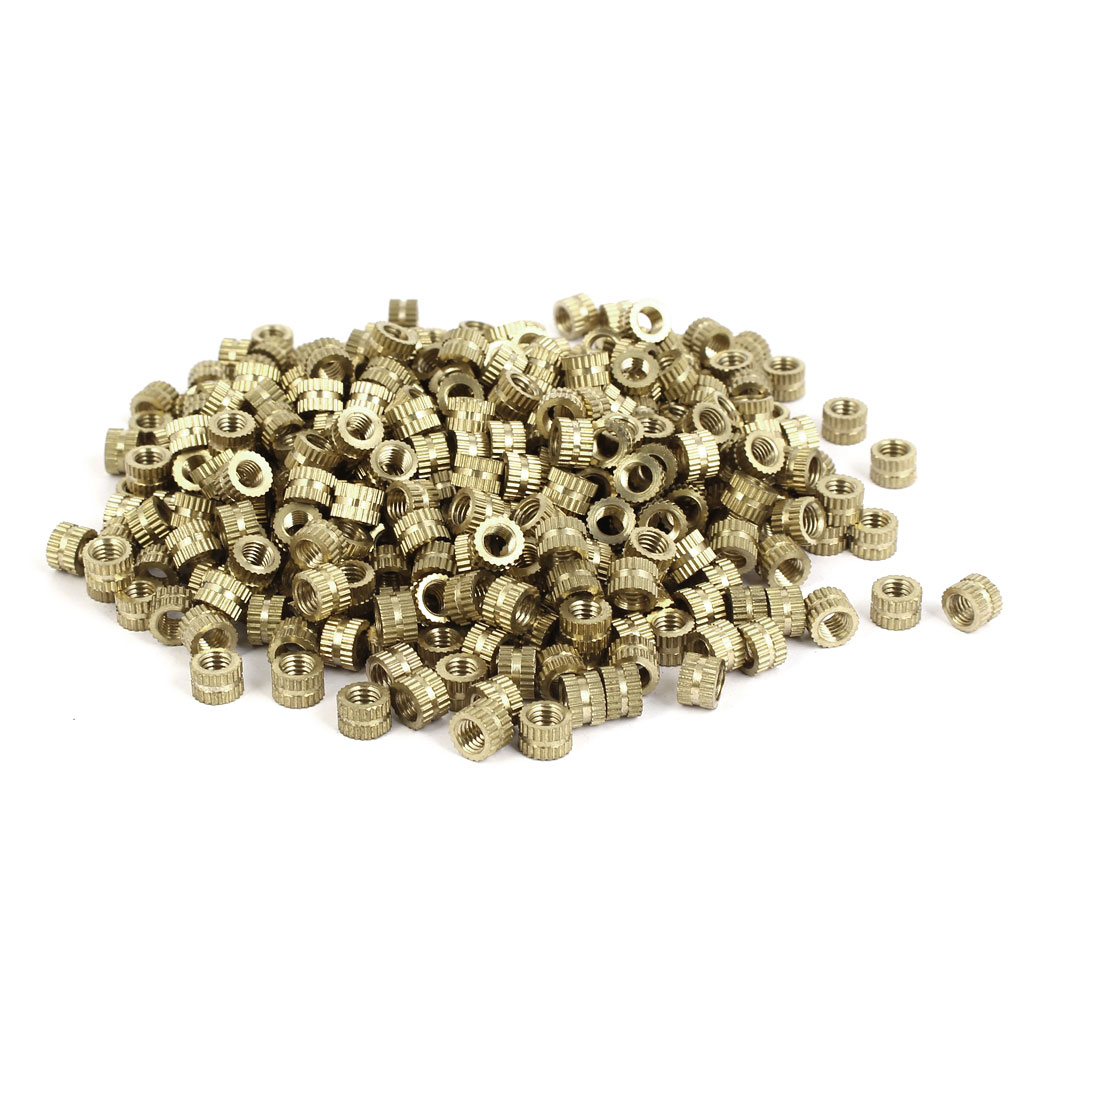 M5 x 5mm Brass Cylindrical Knurled Threaded Round Insert Embedded Nuts 500PCS